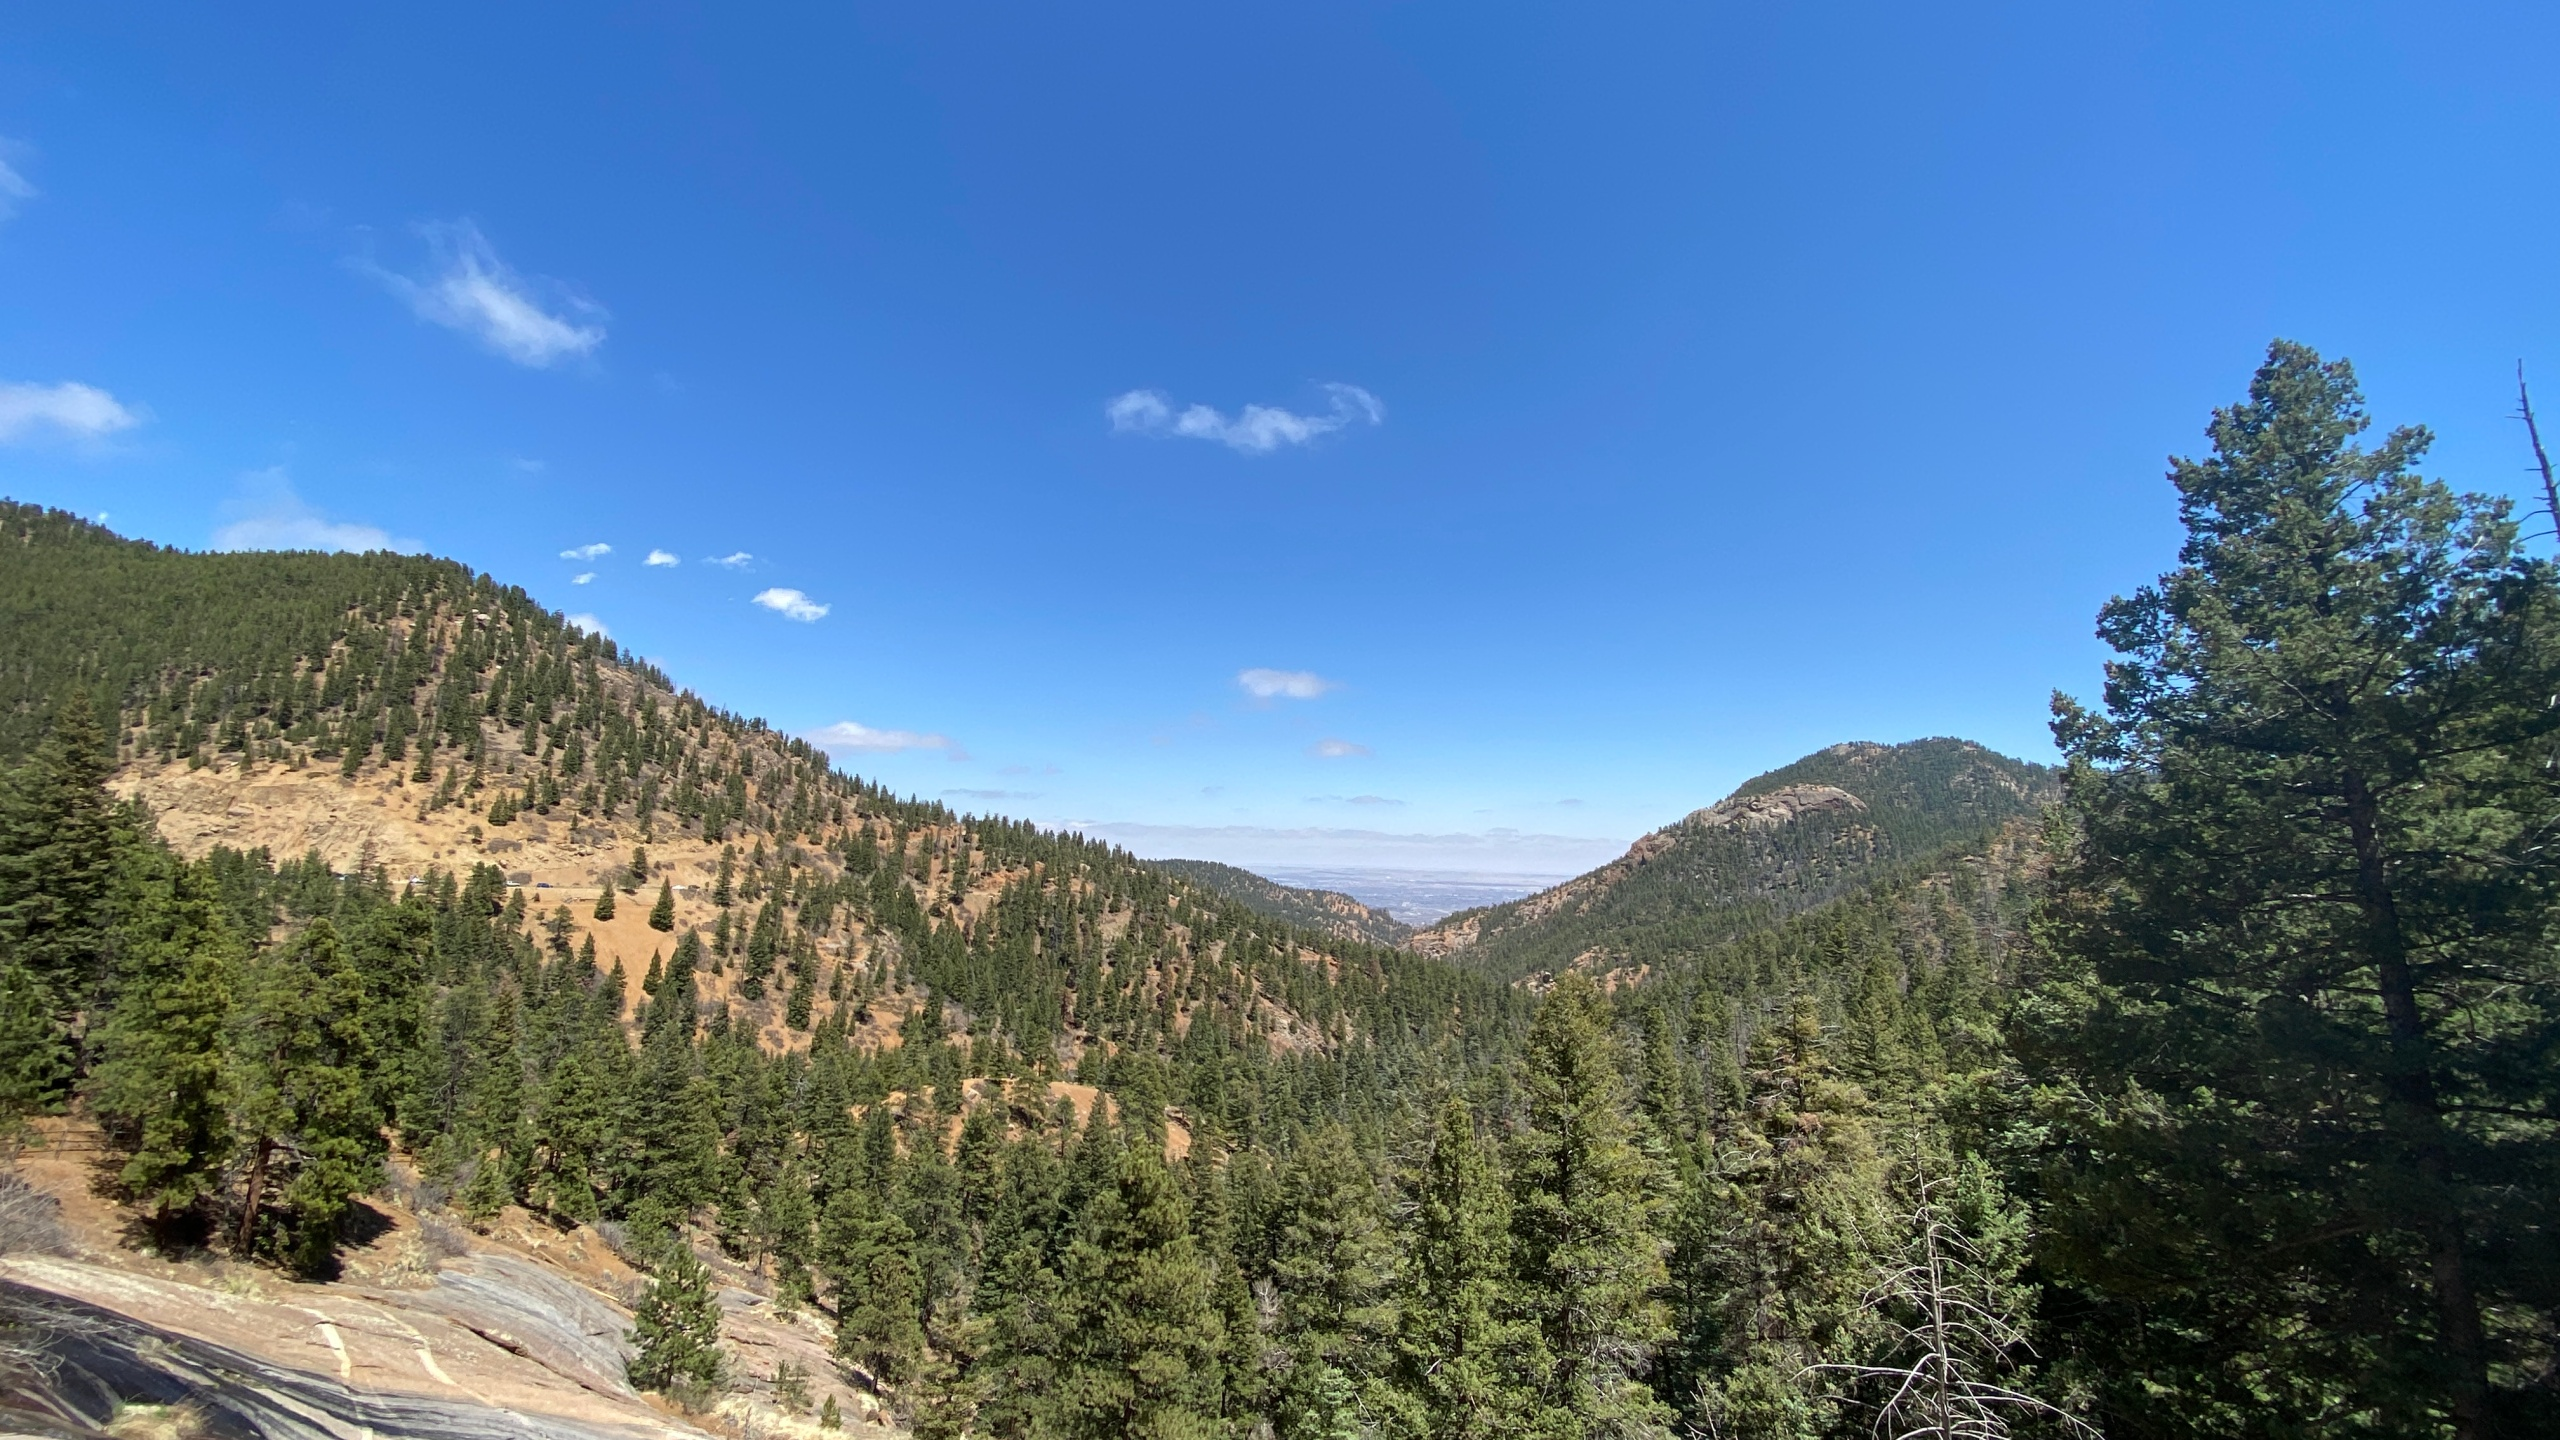 A view of North Cheyenne Cañon from the Silver Cascade Trail. / Brian DePalo - FOX21 News